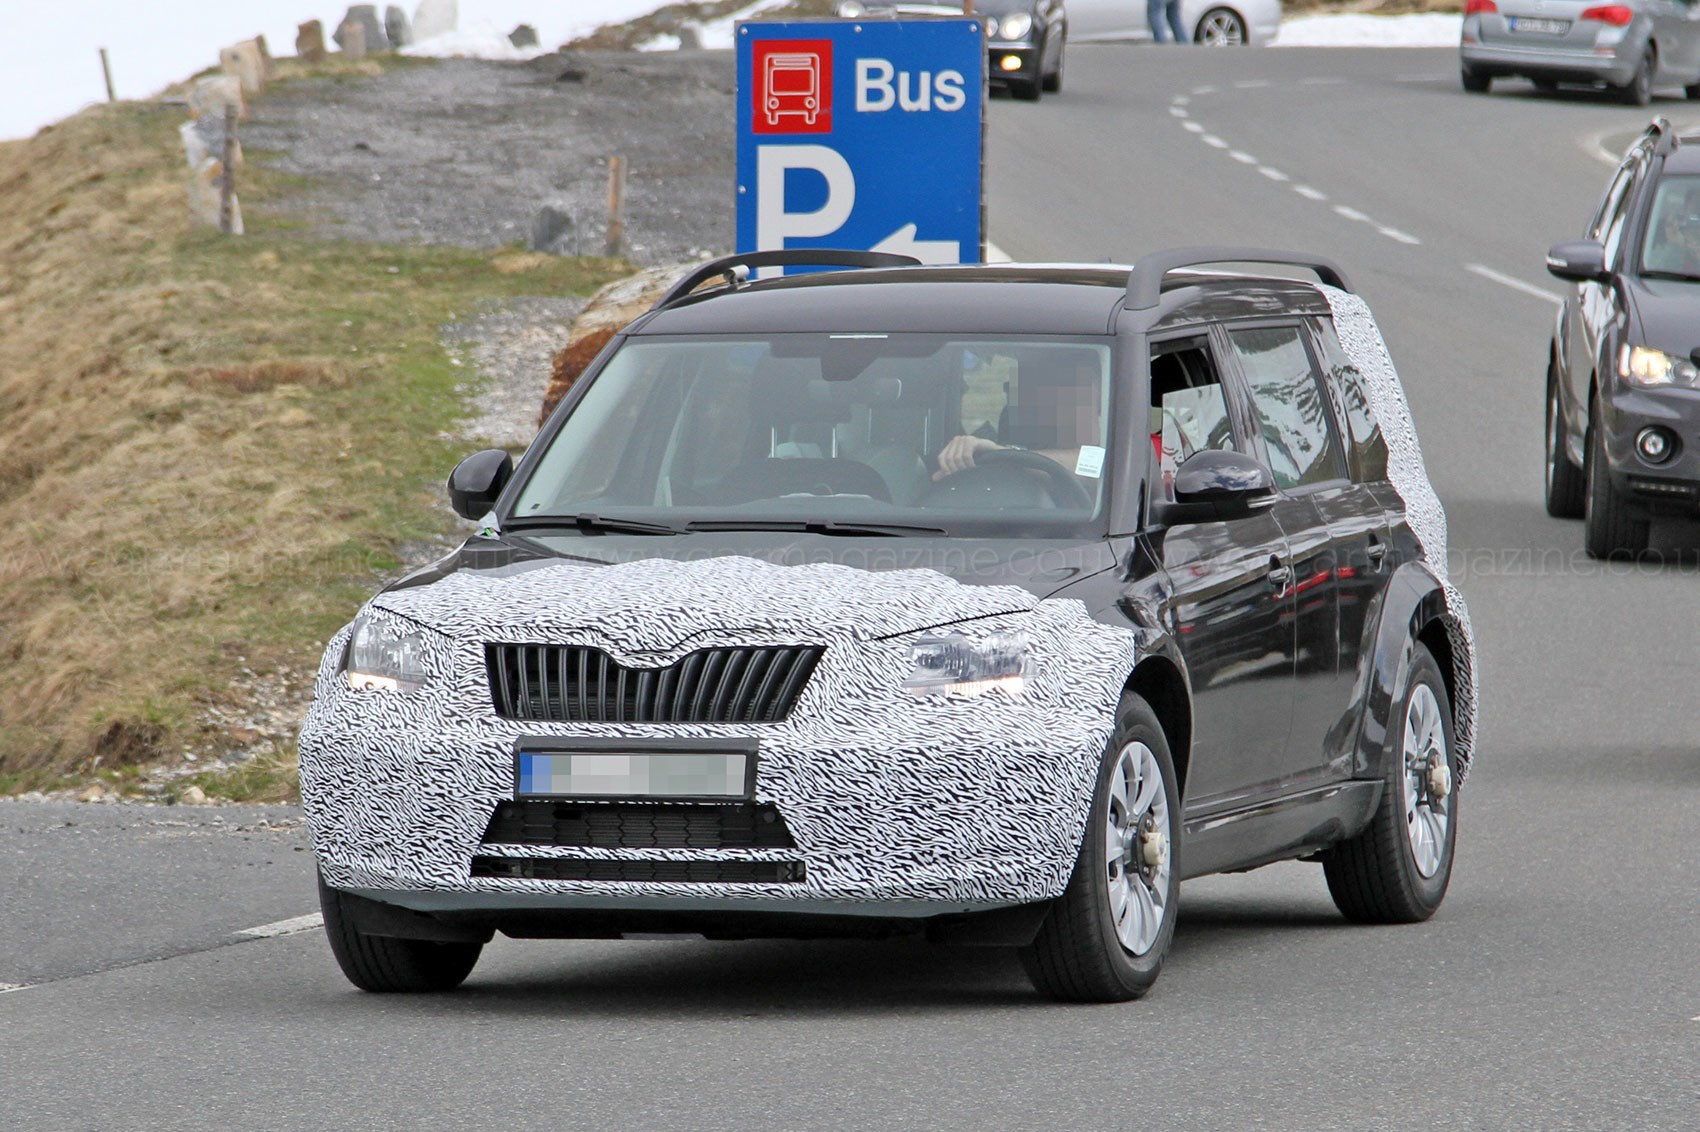 Skoda yeti 2017 review release date new automotive trends skoda - Upcoming Larger Skoda Suv Spied On Test In The Mountains